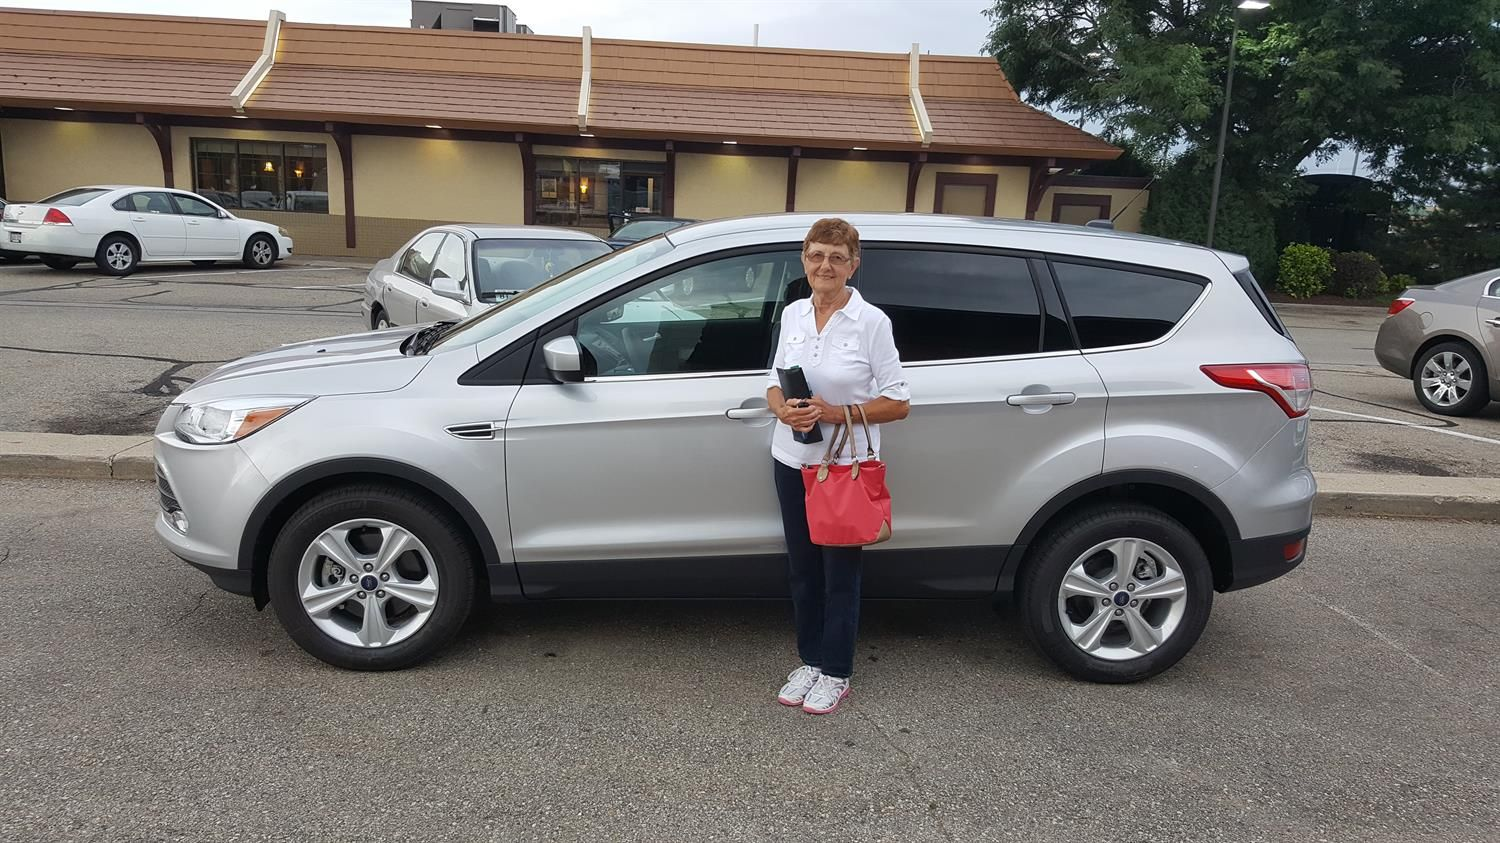 MARILYN's new 2016 Ford Escape! Congratulations and best wishes from Kunes Country Ford Lincoln of Delavan and Daniel Ranson.